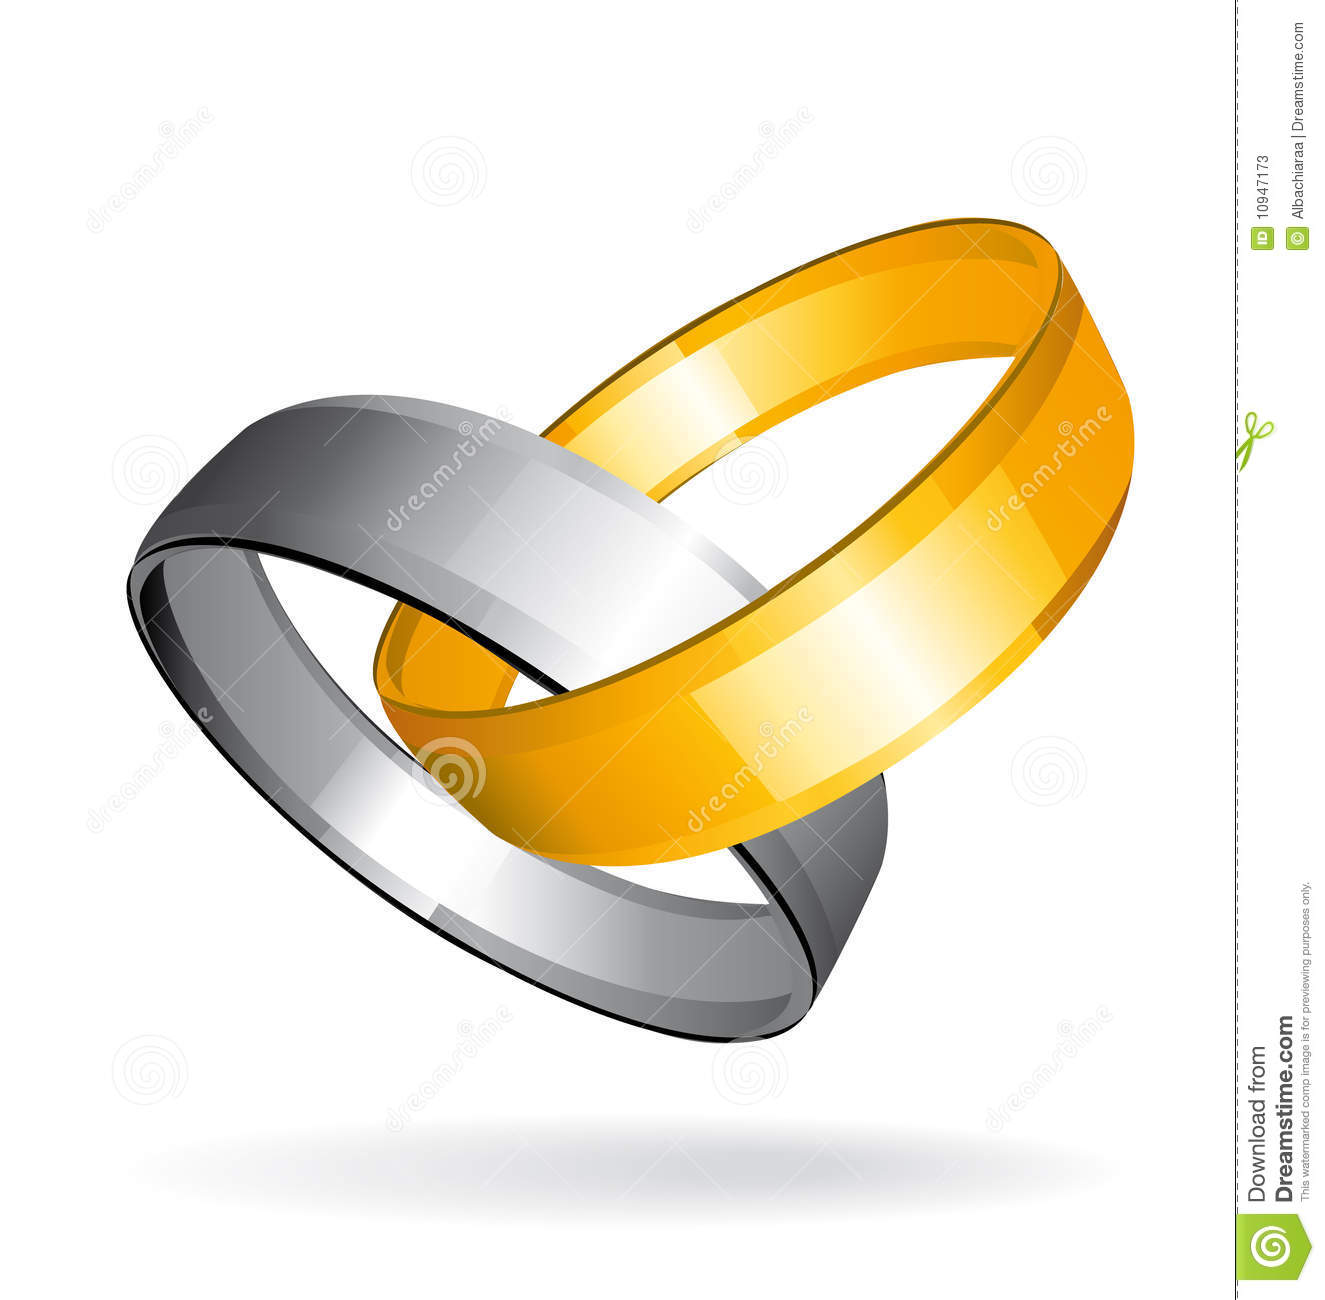 two gold and silver wedding rings - Gold And Silver Wedding Rings